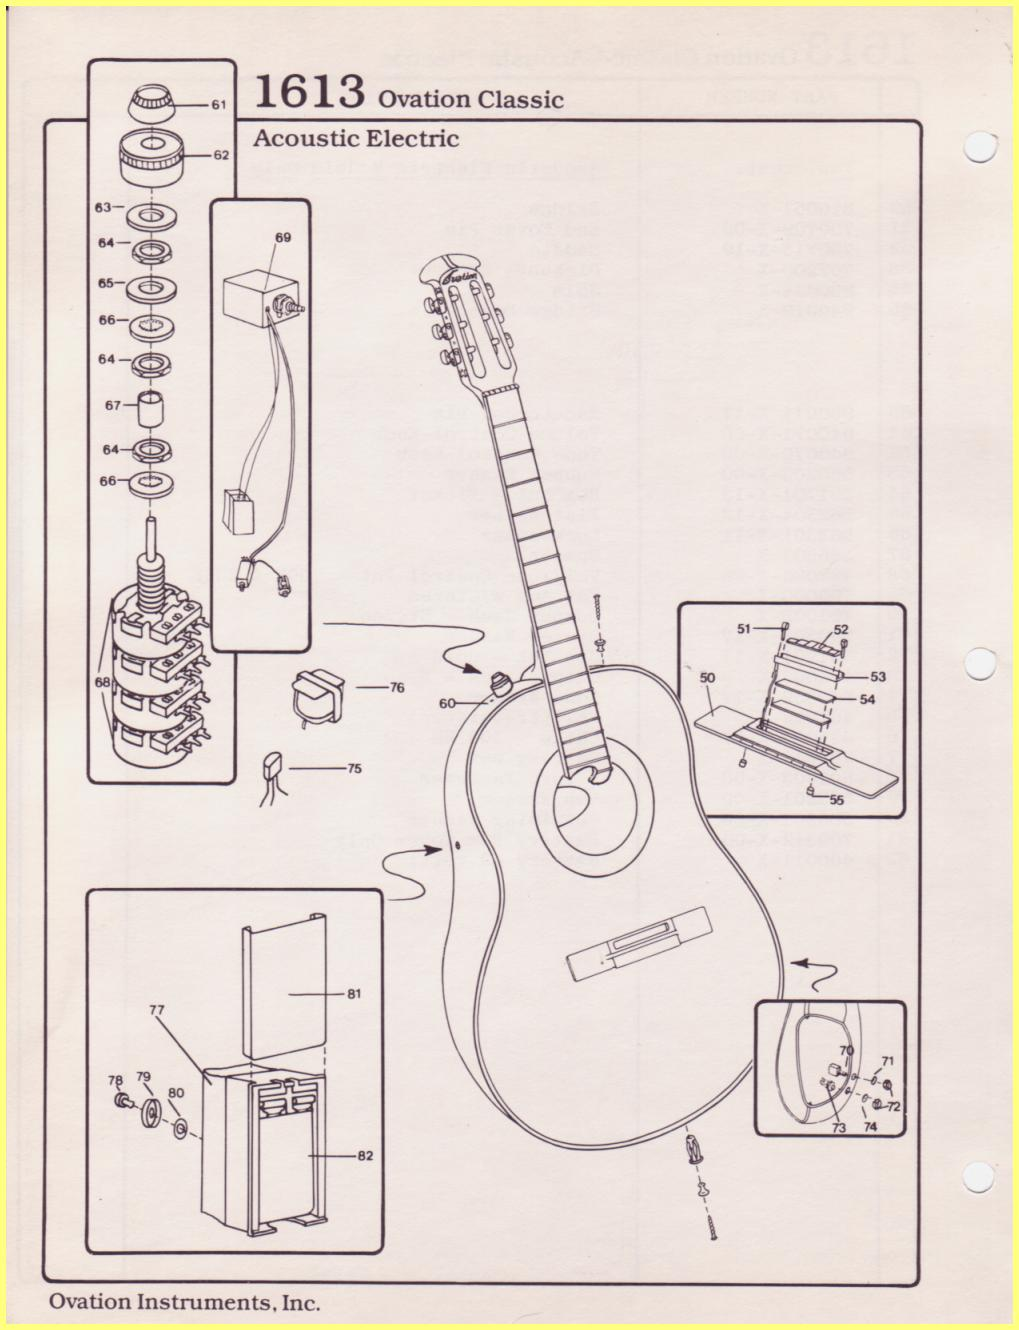 Wiring Diagram For Ovation Guitar And Schematics Of Parts Clic Acoustic Electric